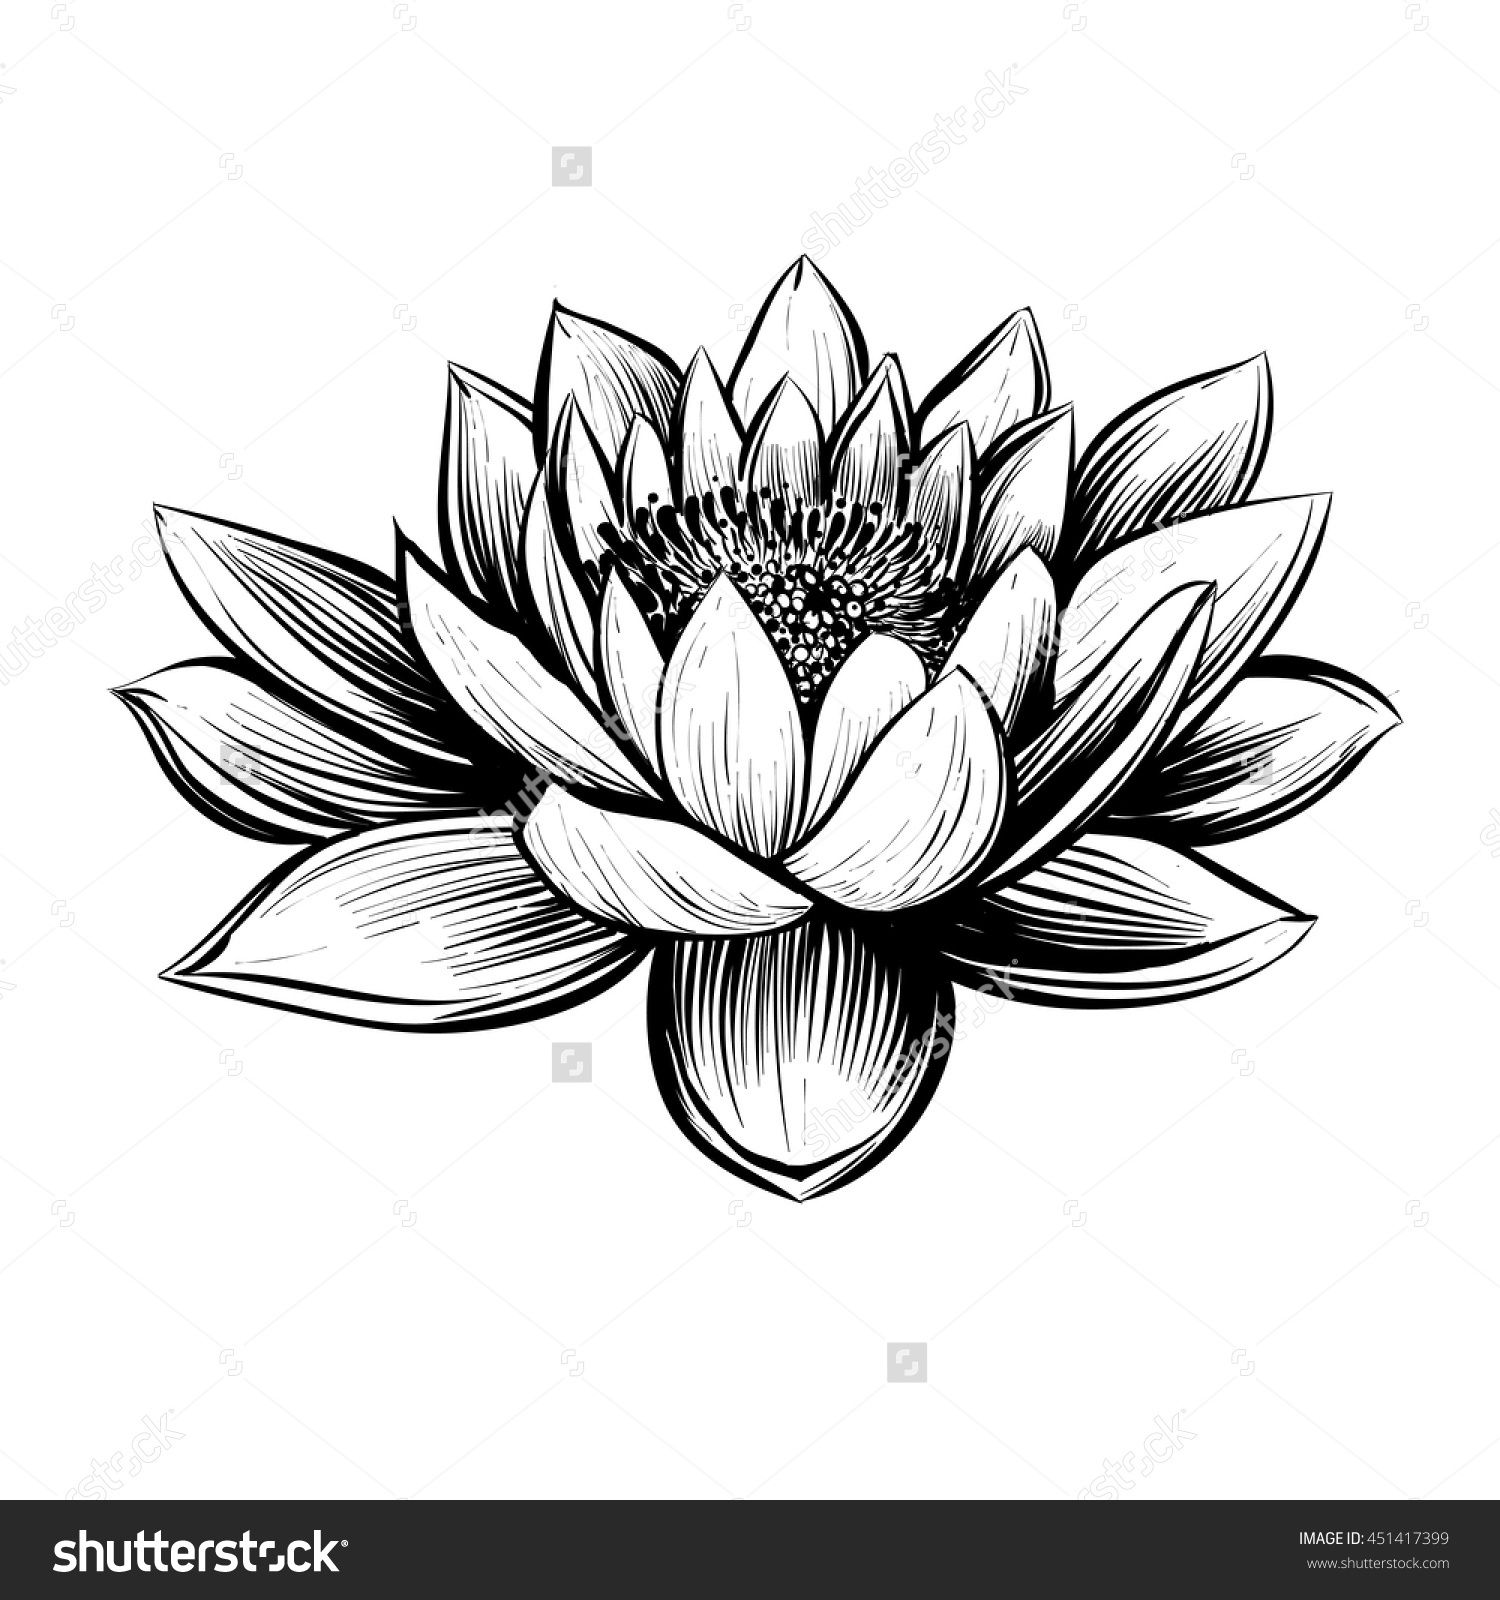 Pin By Catalina On To Sketch Water Lily Tattoos Lily Flower Tattoos Lotus Tattoo Design